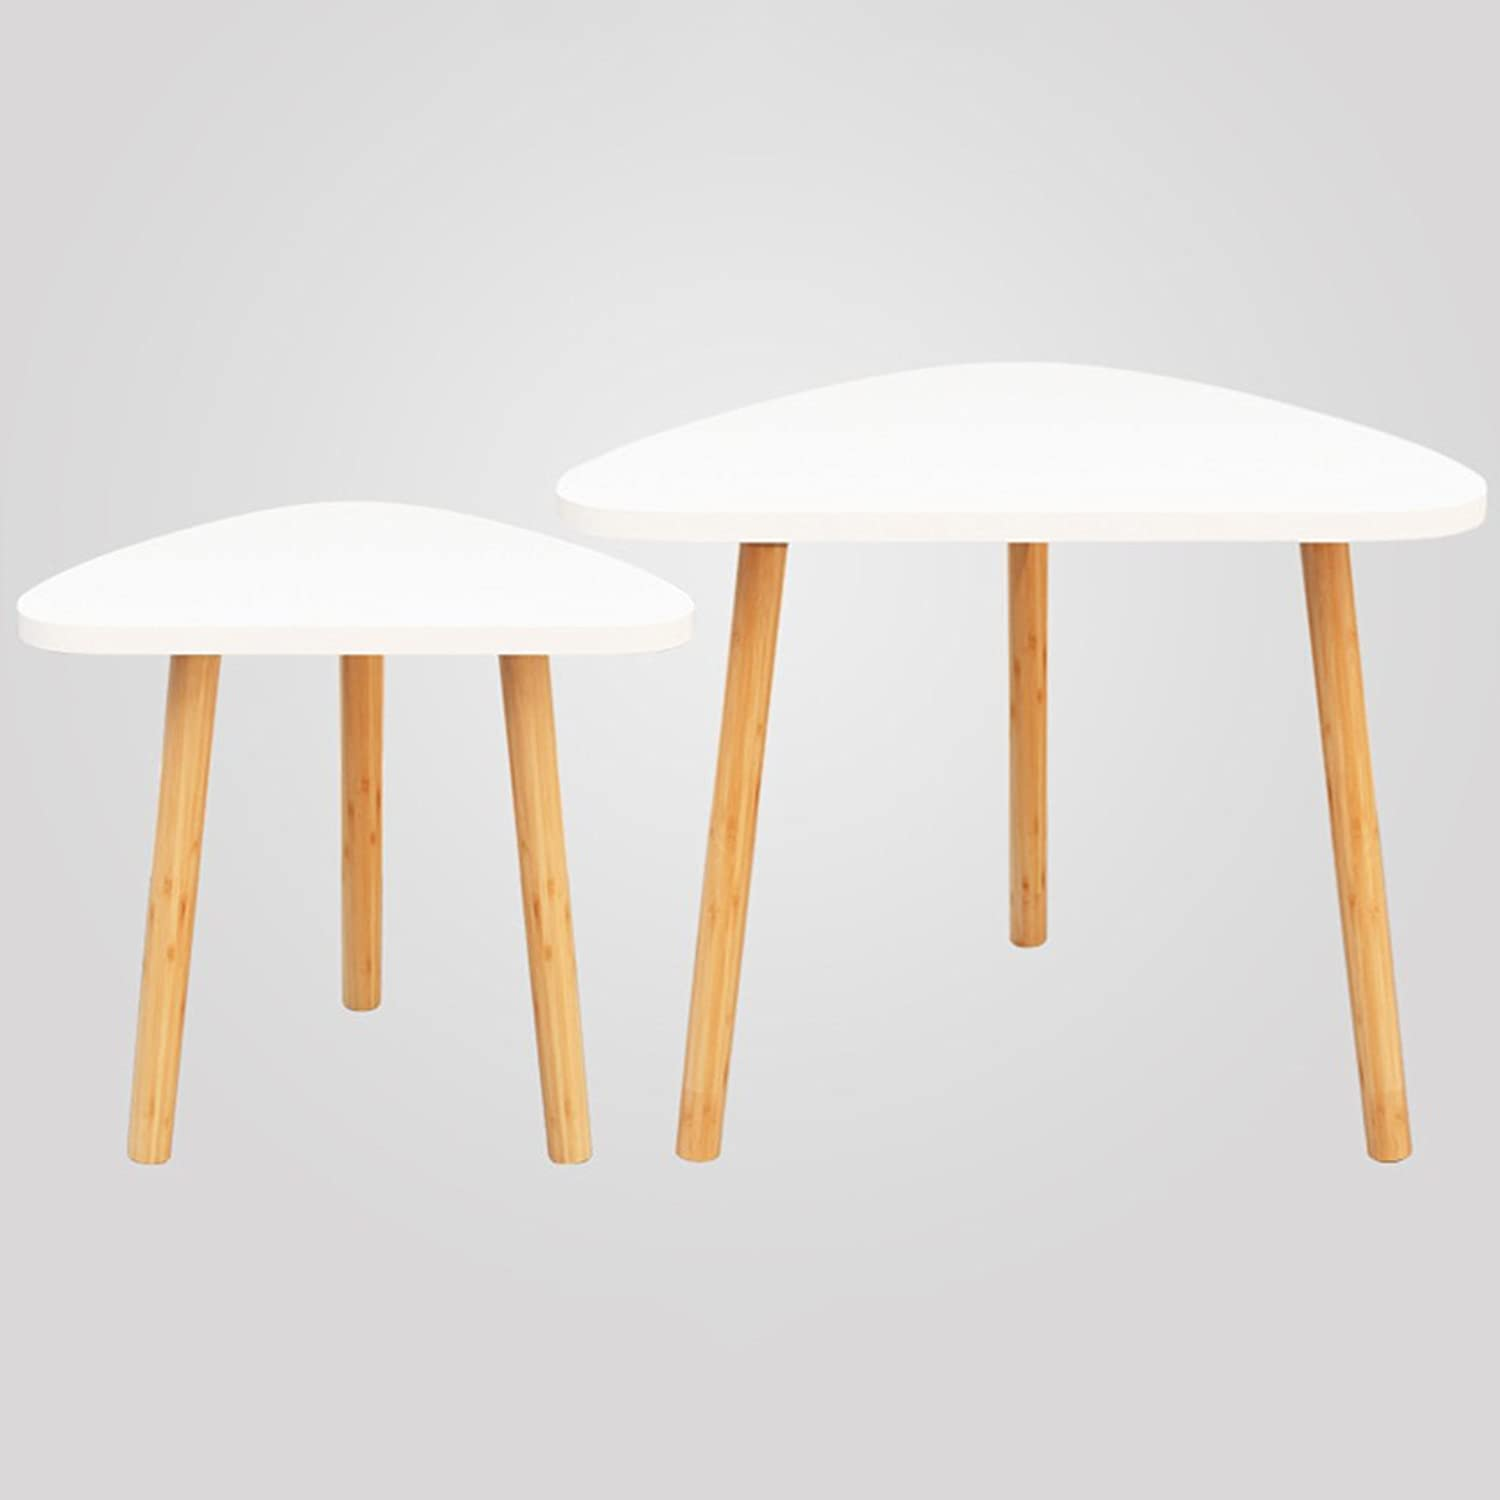 Two Pieces of Nanzhu Leg Sofa Side of The Modern Minimalist Geometric Low Table Triangular Coffee Table (color   White)